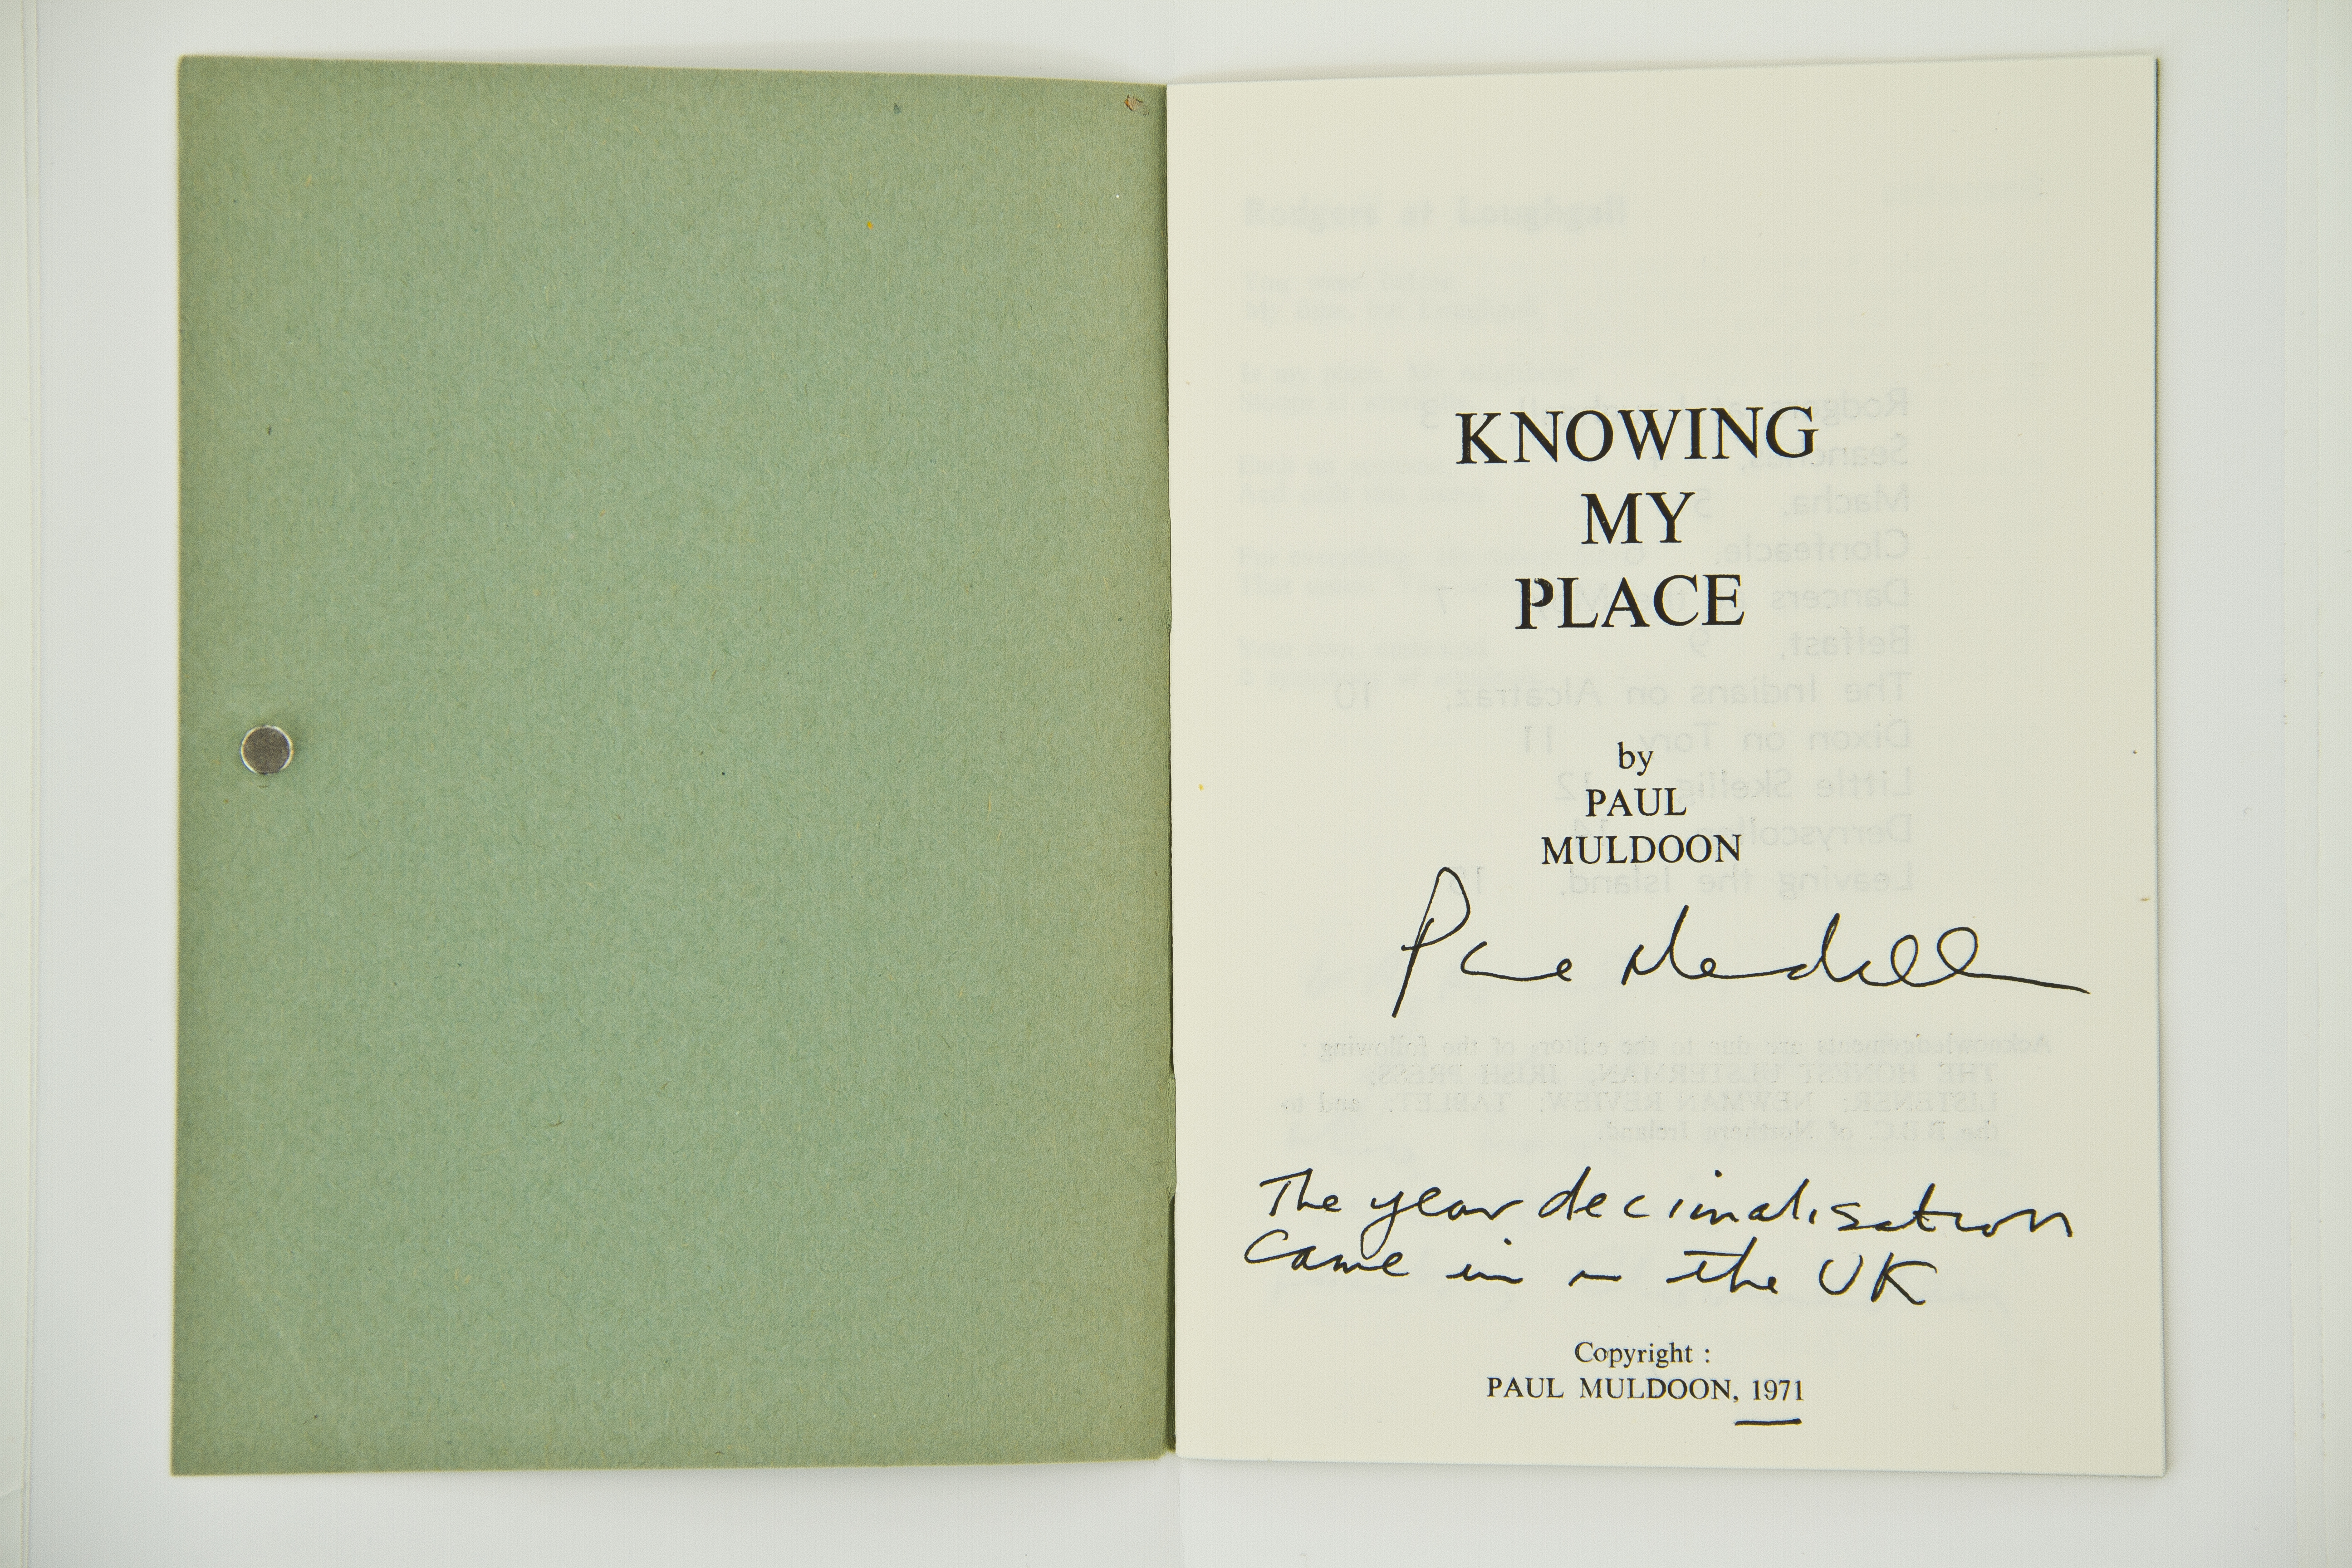 KnowingMyPlace_PaulMuldoon_02